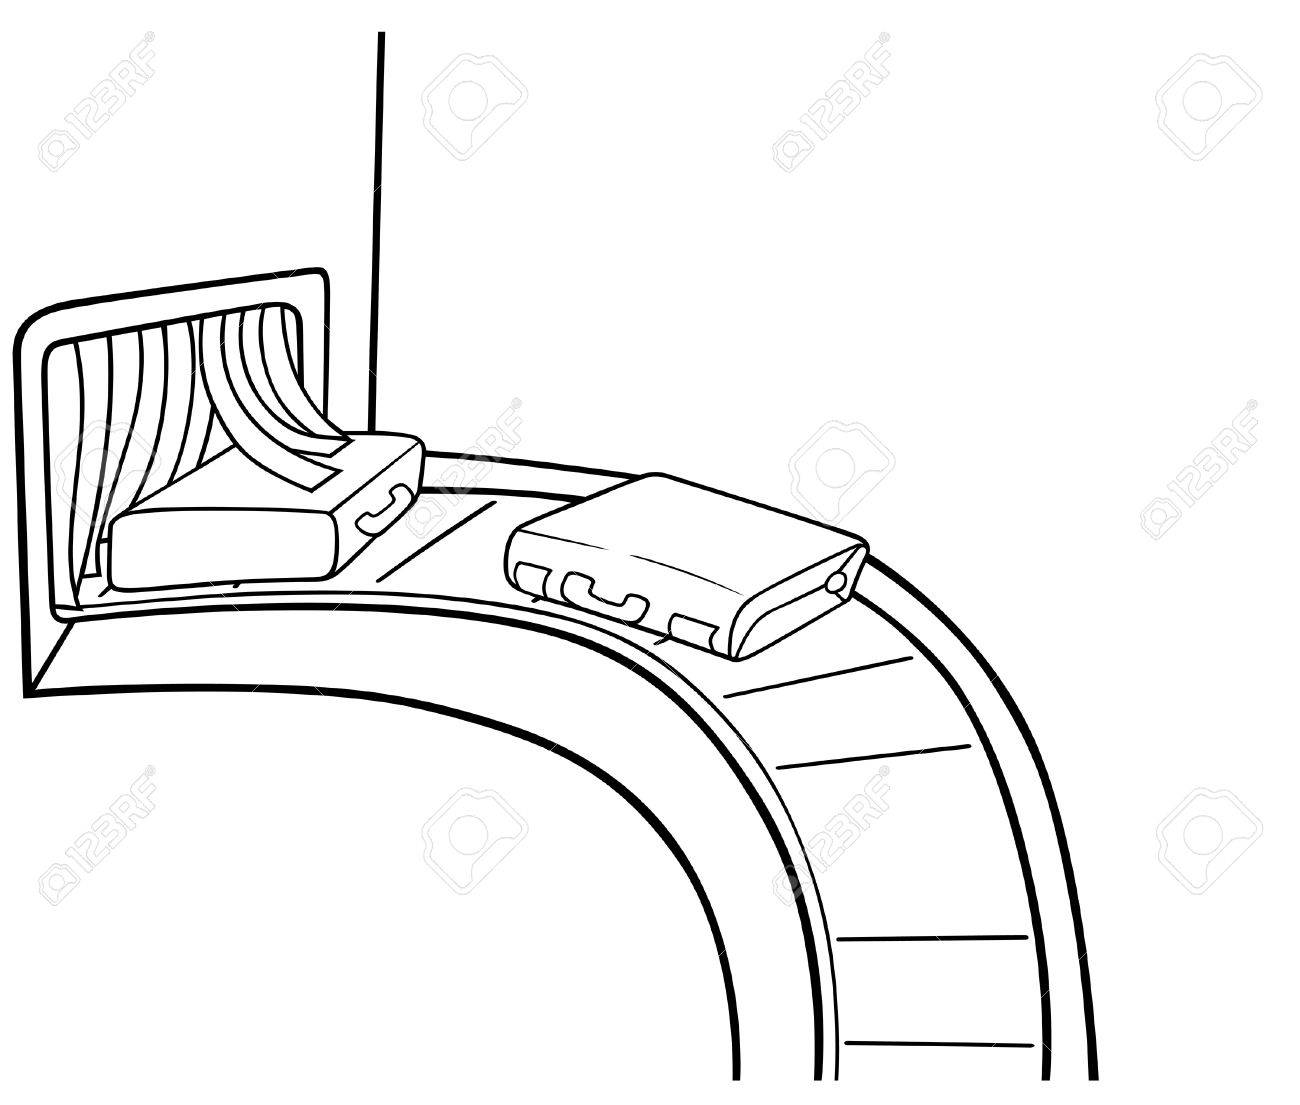 Baggage Claim - Black and White Cartoon illustration, Vector Stock Vector - 8669809